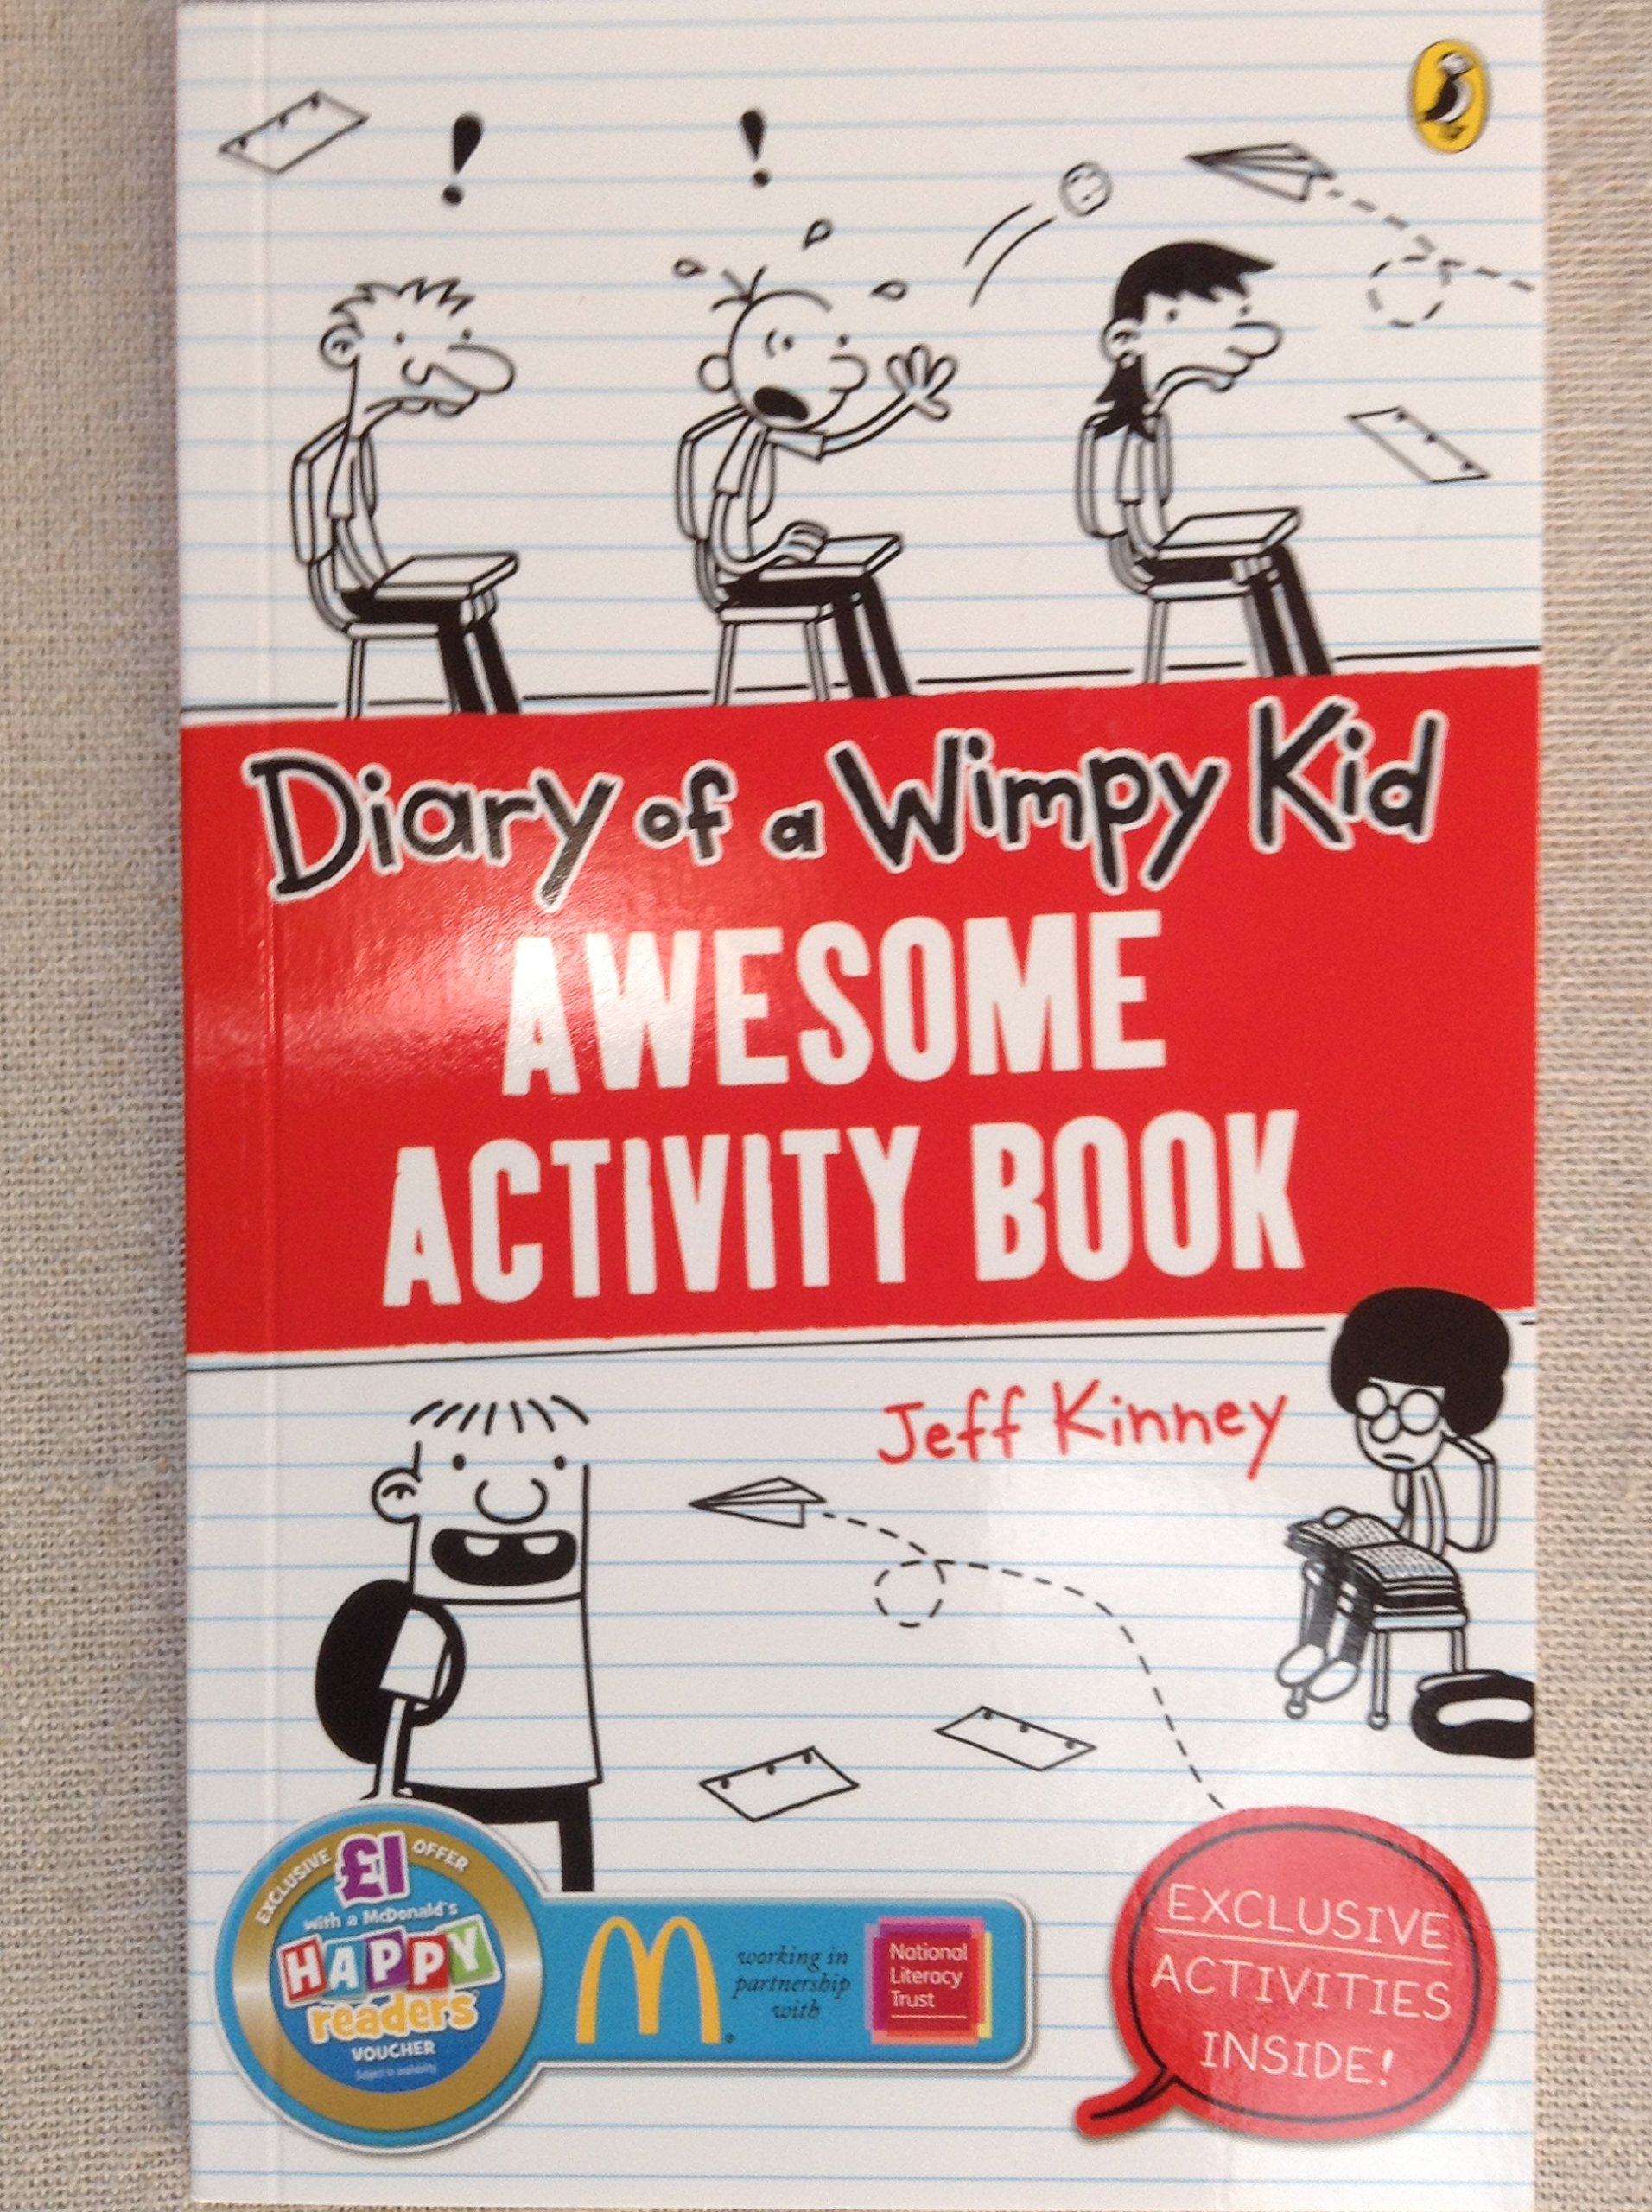 Diary of a wimpy kid awesome activity book amazon jeff diary of a wimpy kid awesome activity book amazon jeff kinney 9780141376523 books solutioingenieria Images